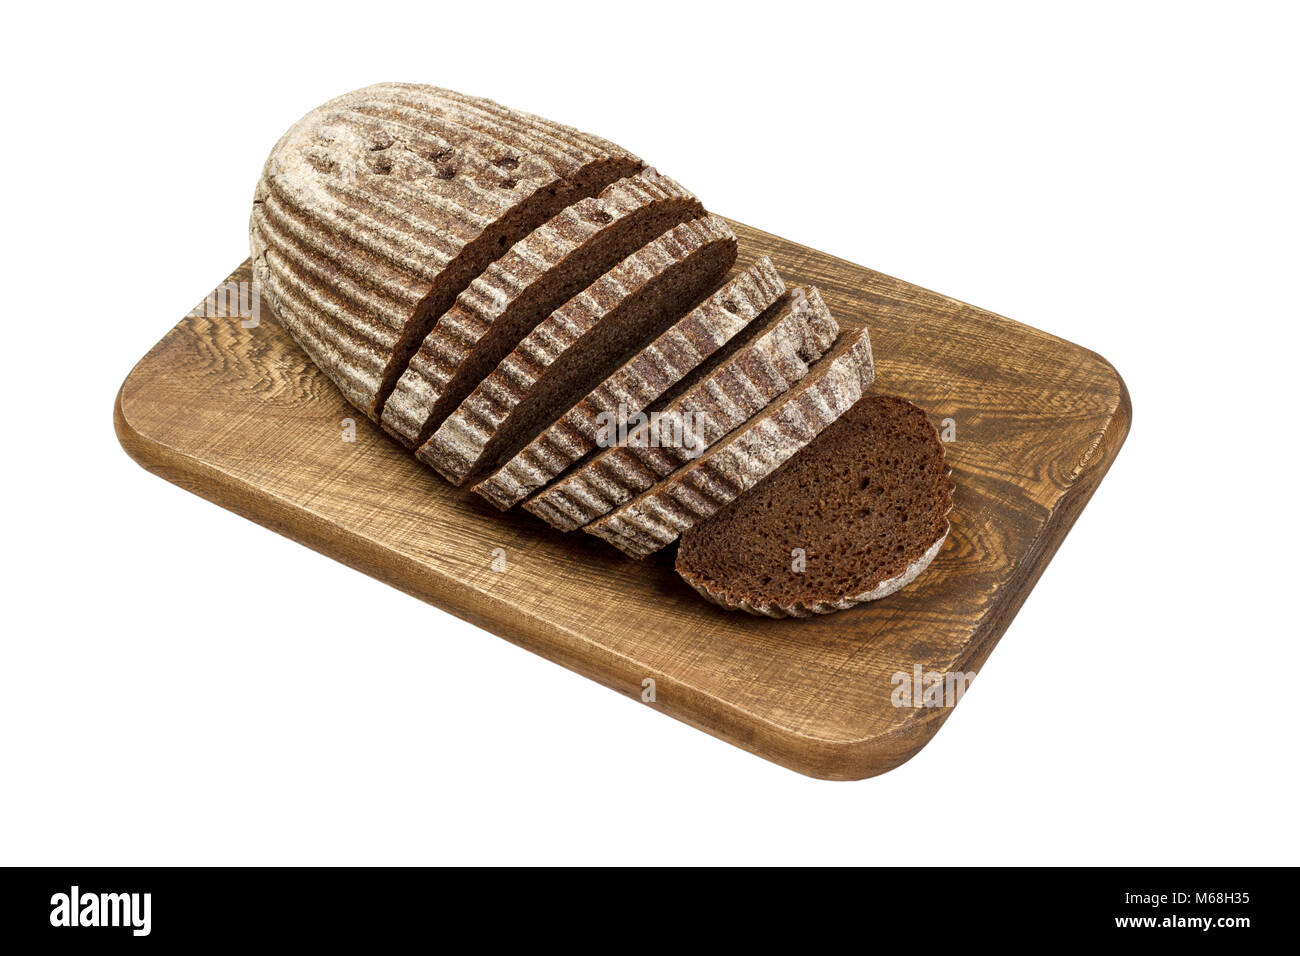 fresh sliced rye bread on wooden board isolated on white. Stock Photo